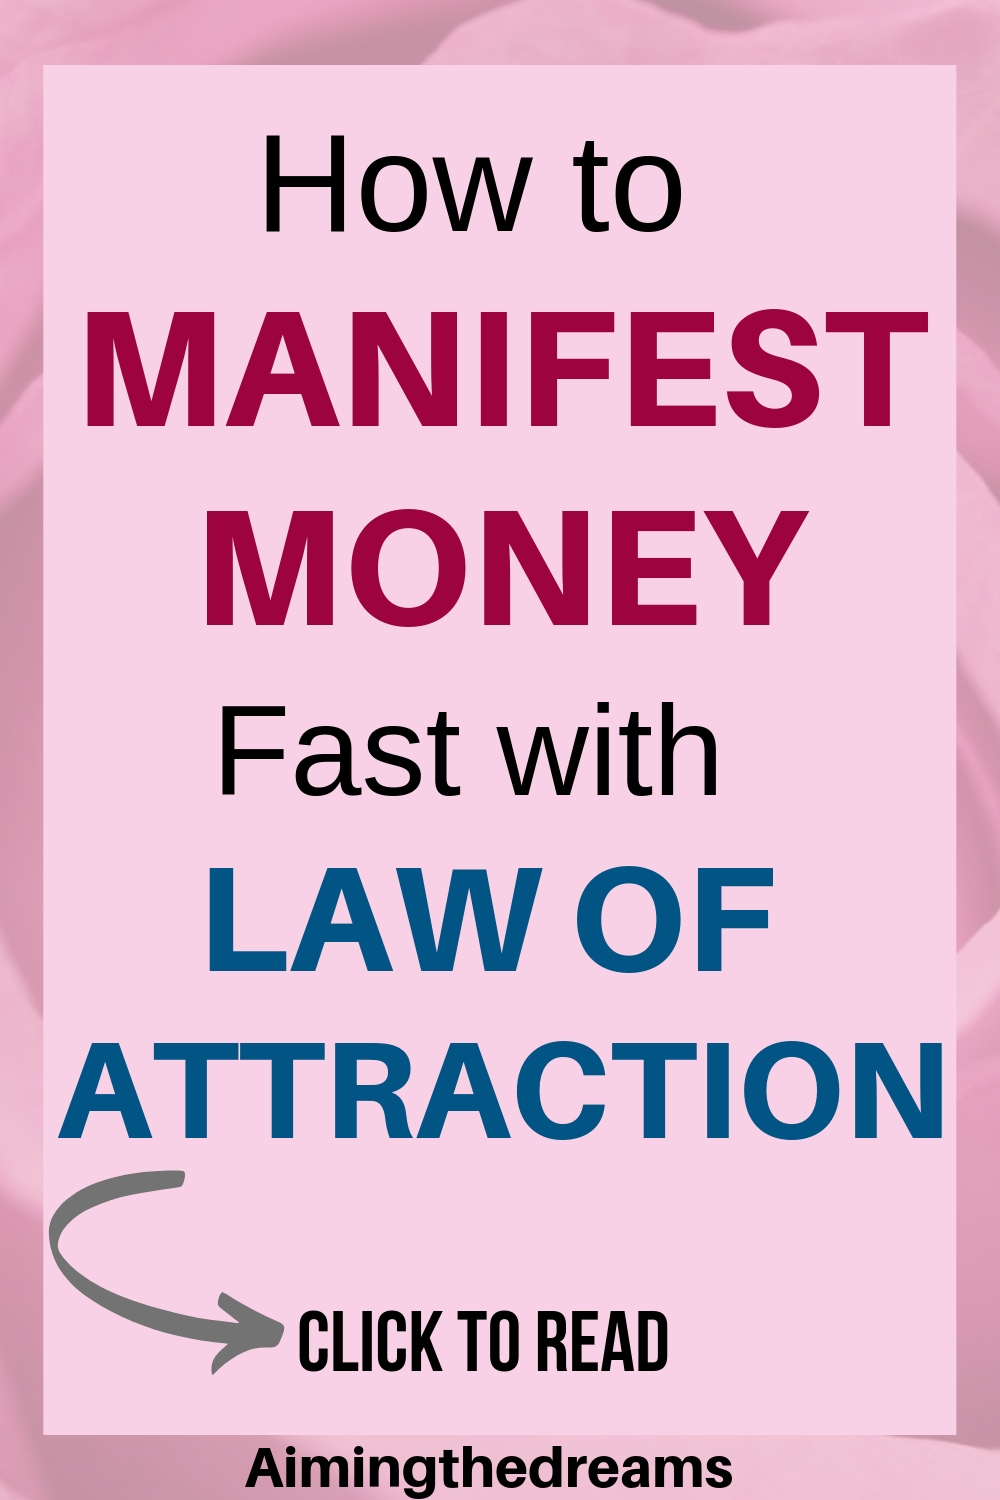 How to manifest money with law of attraction. Universe let you feel the vibrations you need for abundance.